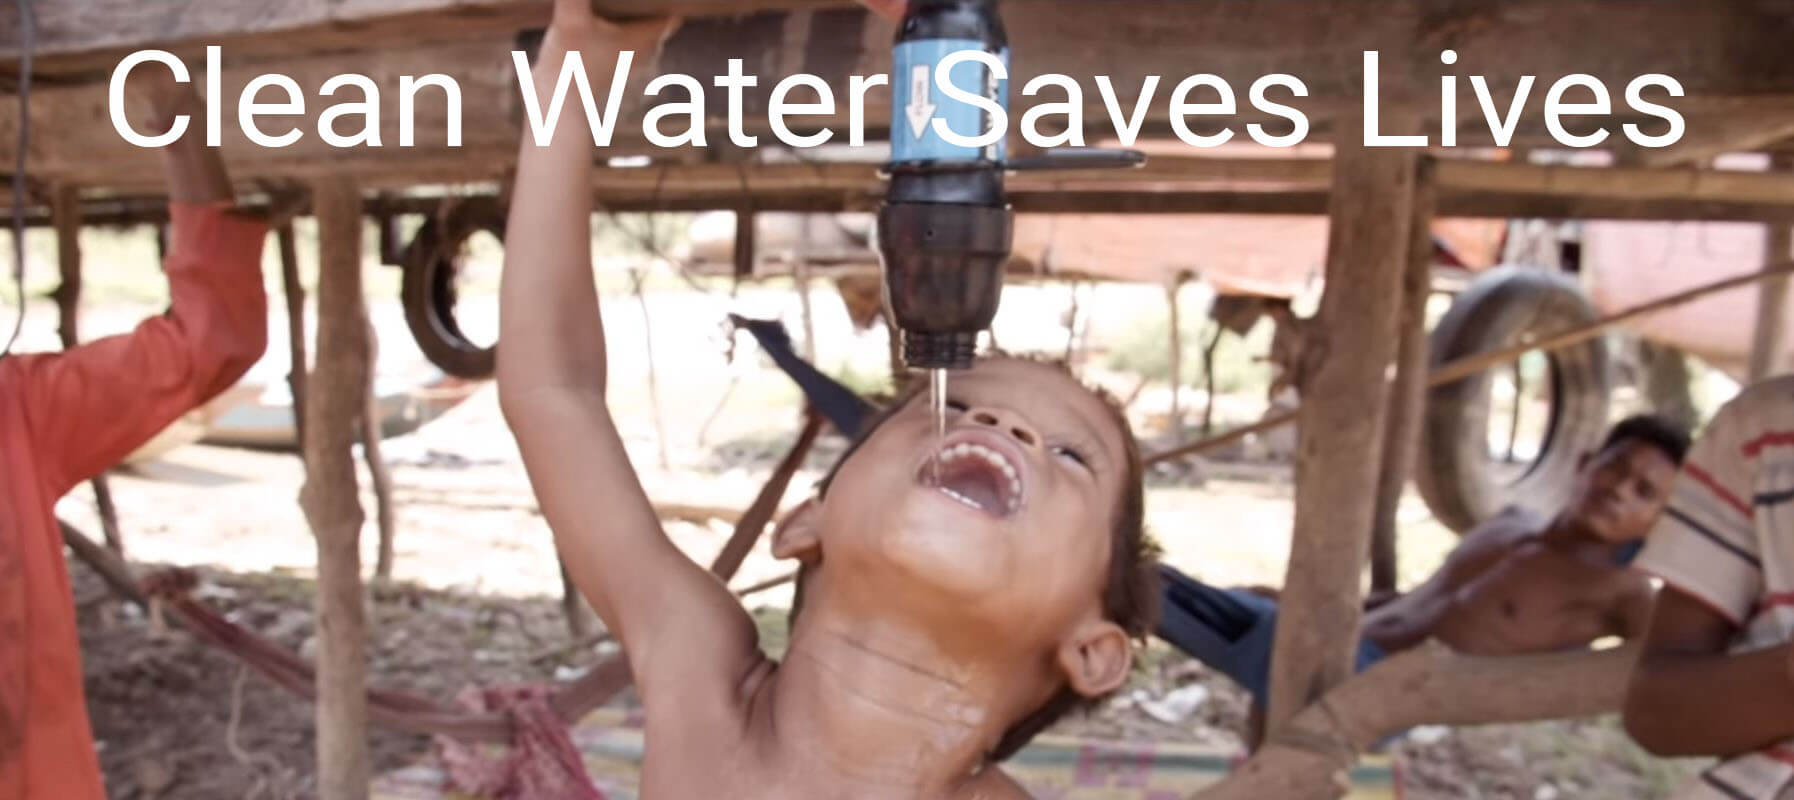 Clean Water Saves Lives: Make a Difference